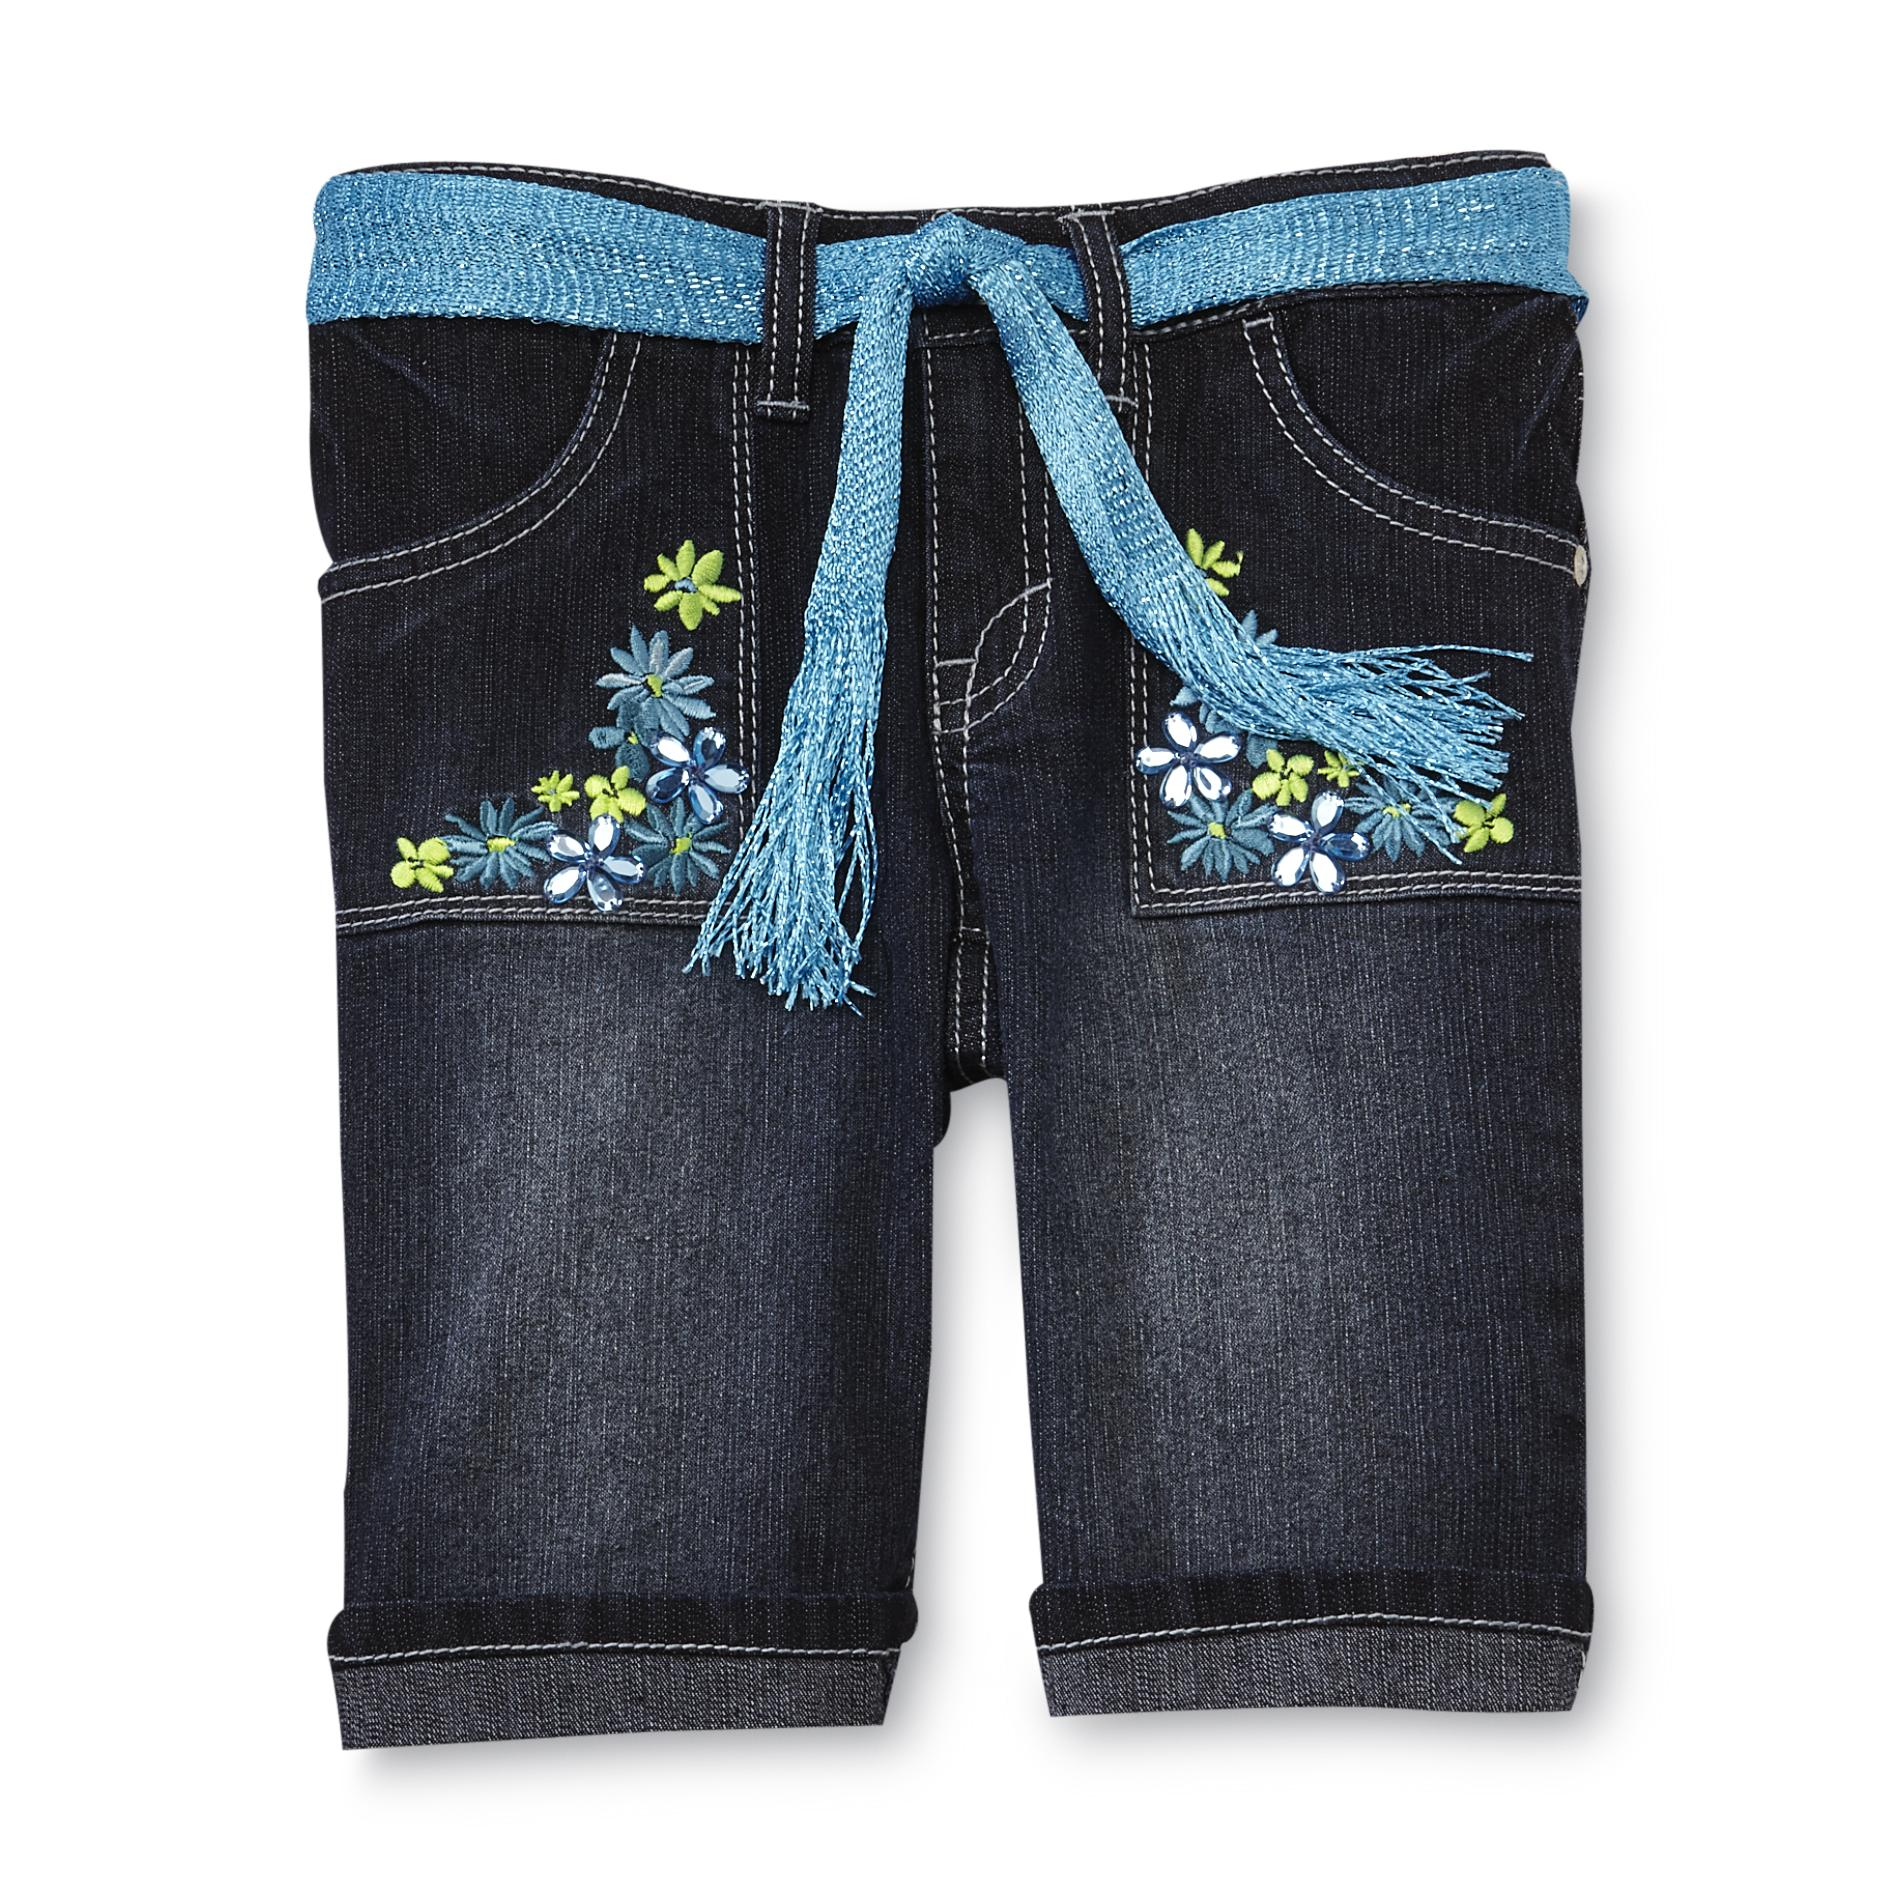 Route 66 Girl's Denim Shorts & Belt - Flowers at Kmart.com